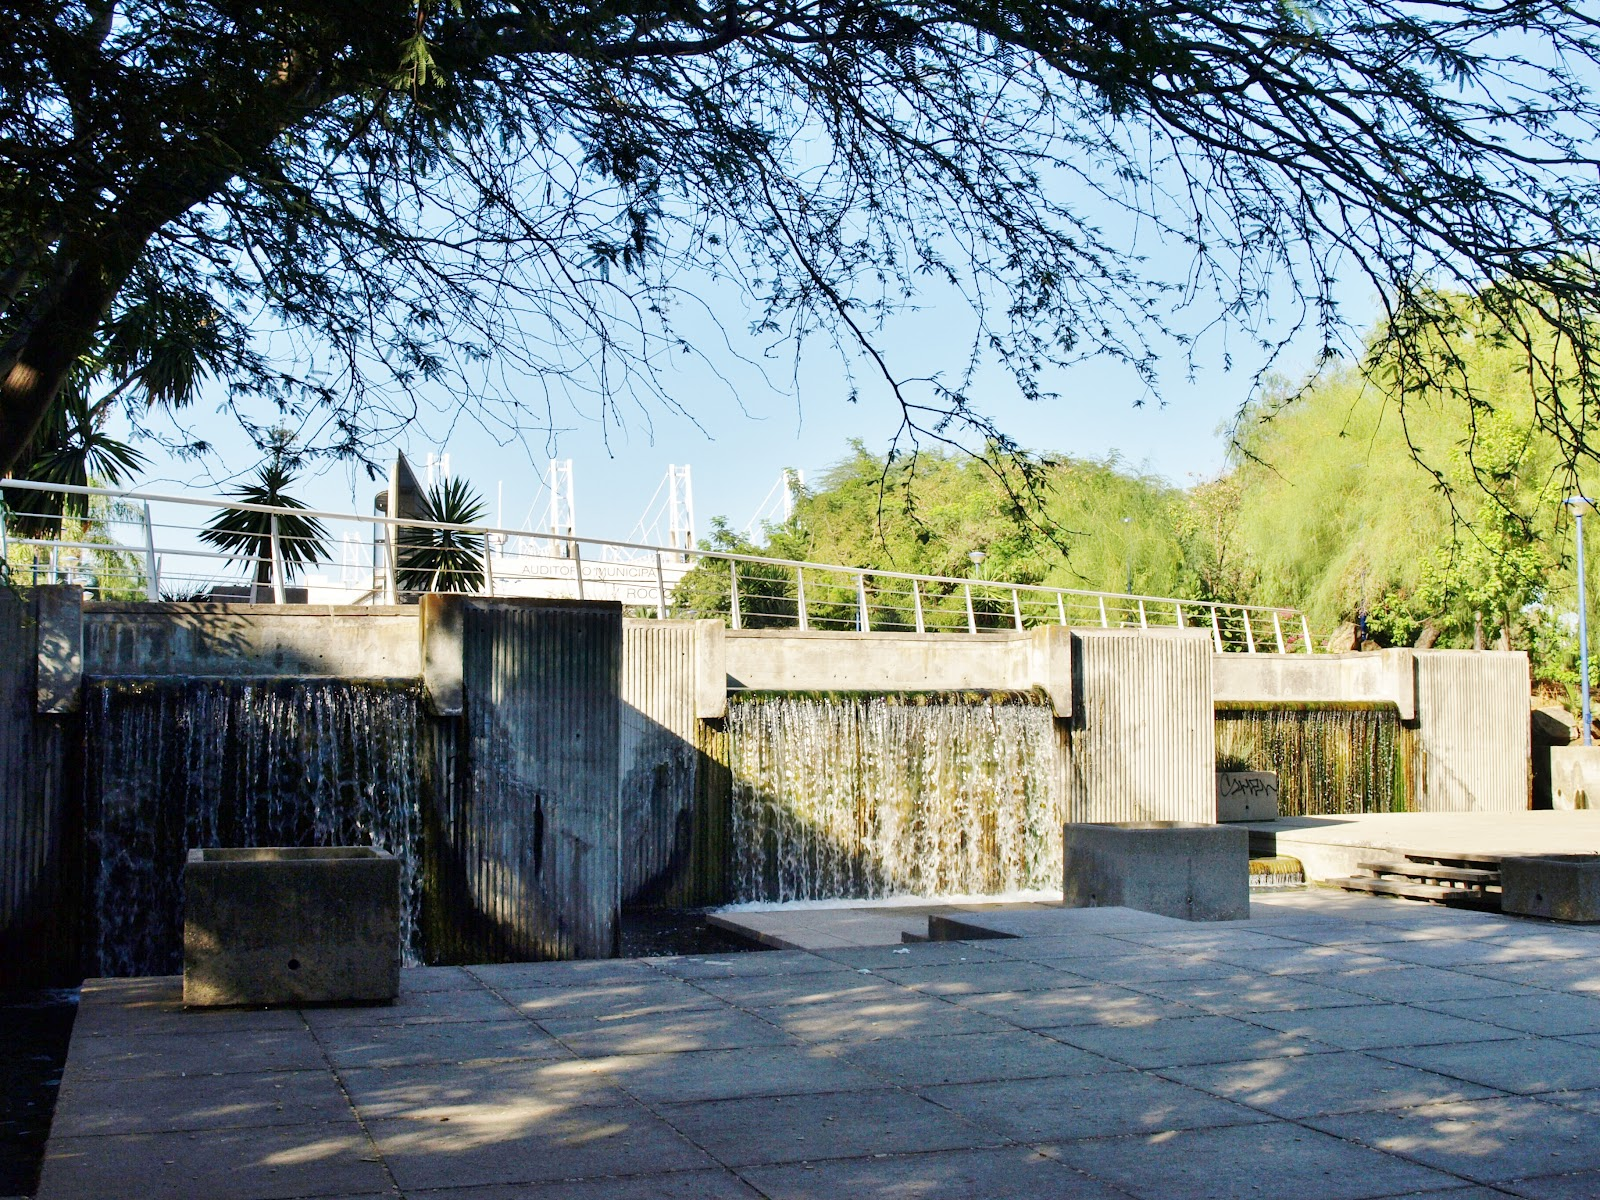 Sevilla daily photo la cascada del jard n acu tico for Jardin acuatico